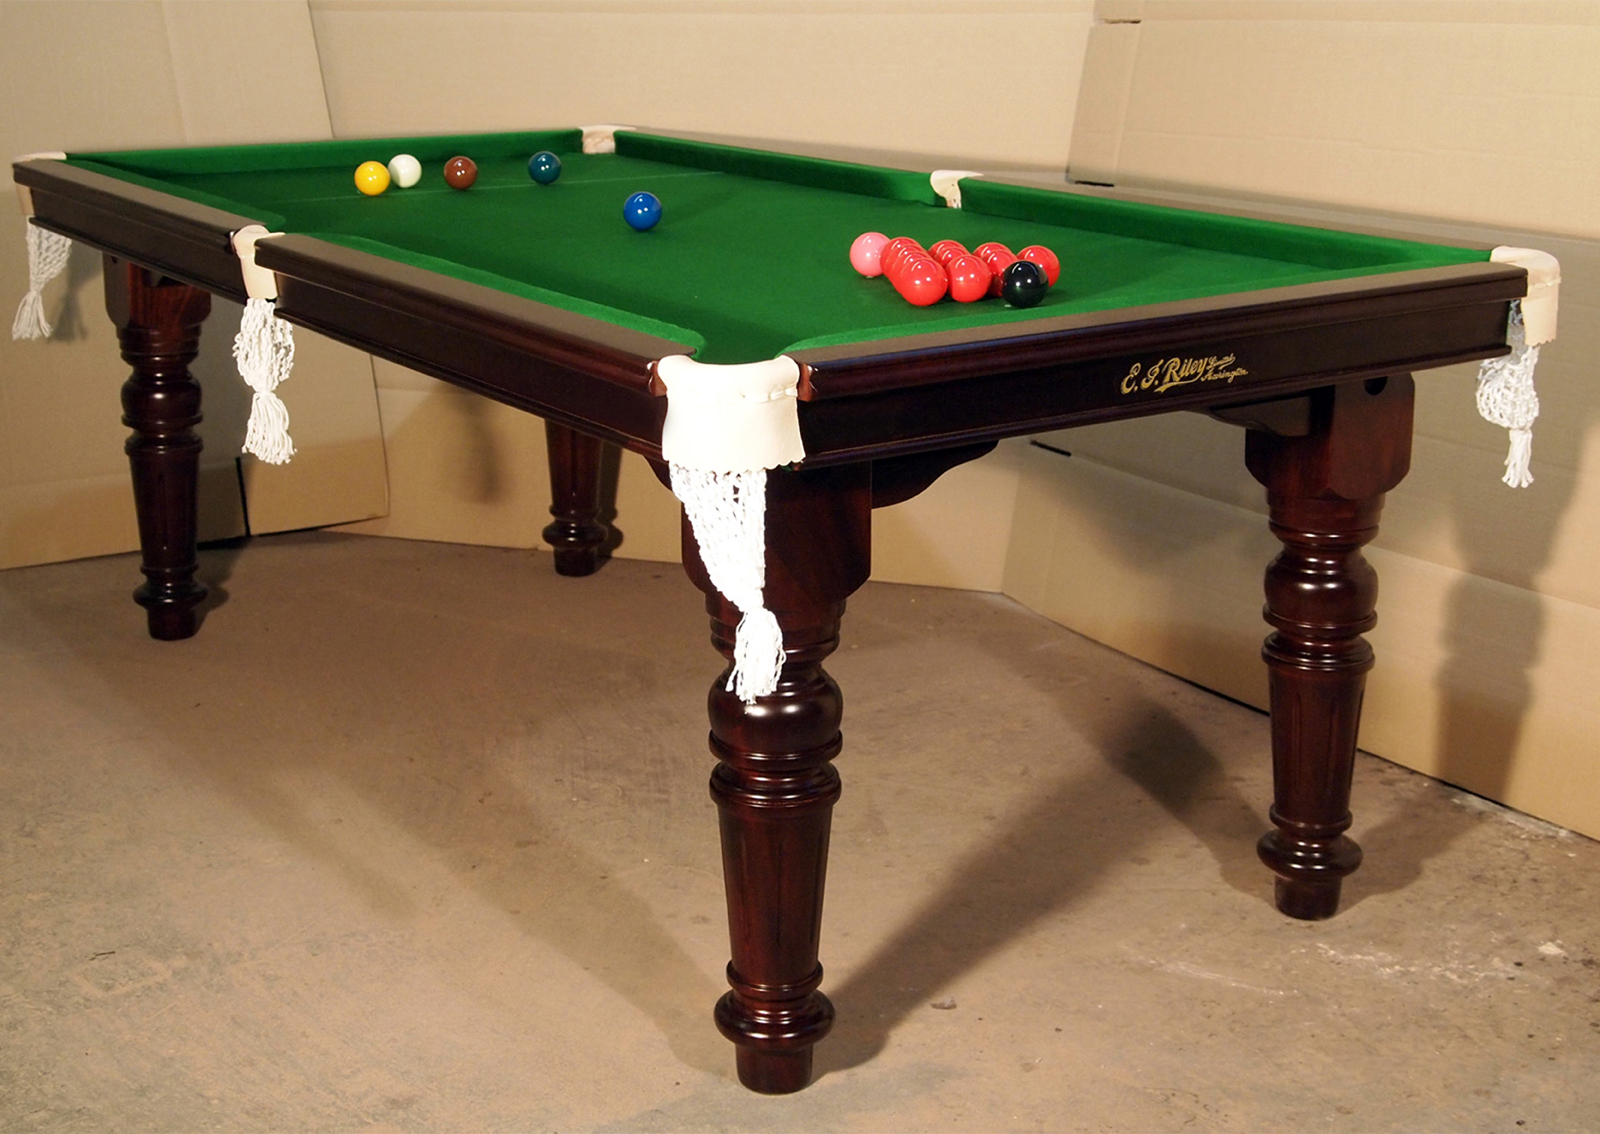 paint tables amazing cheap ideas decor pool the for me set near latest table by sale